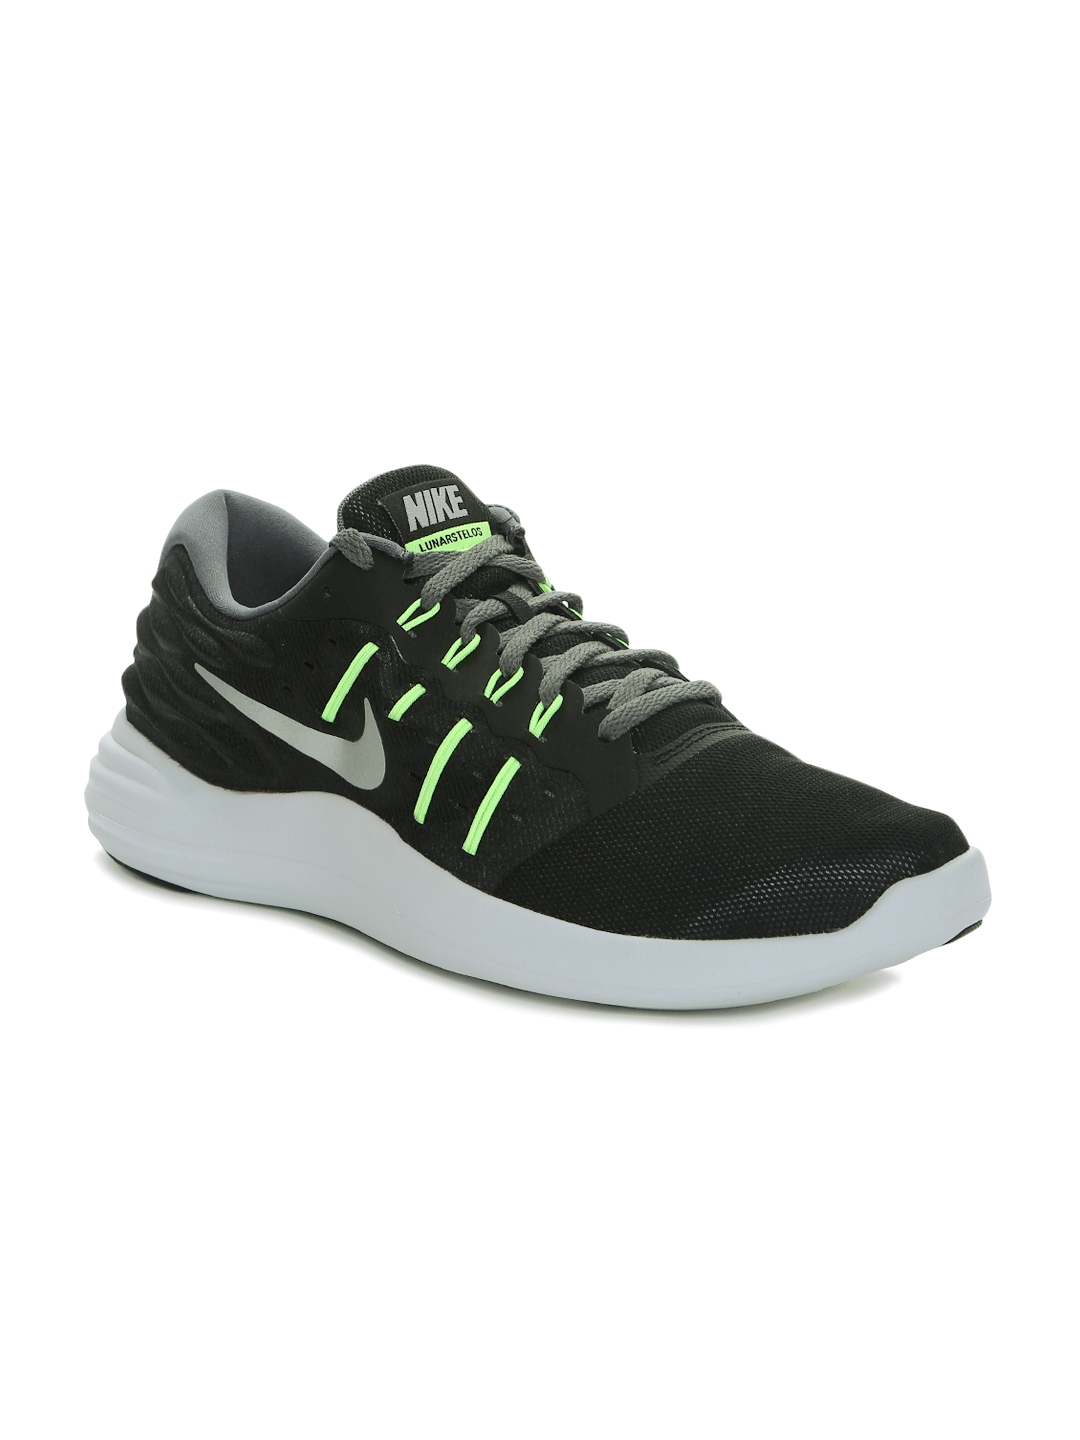 2cab4f2550d Buy Nike Men Black Lunarstelos Running Shoes - Sports Shoes for Men ...